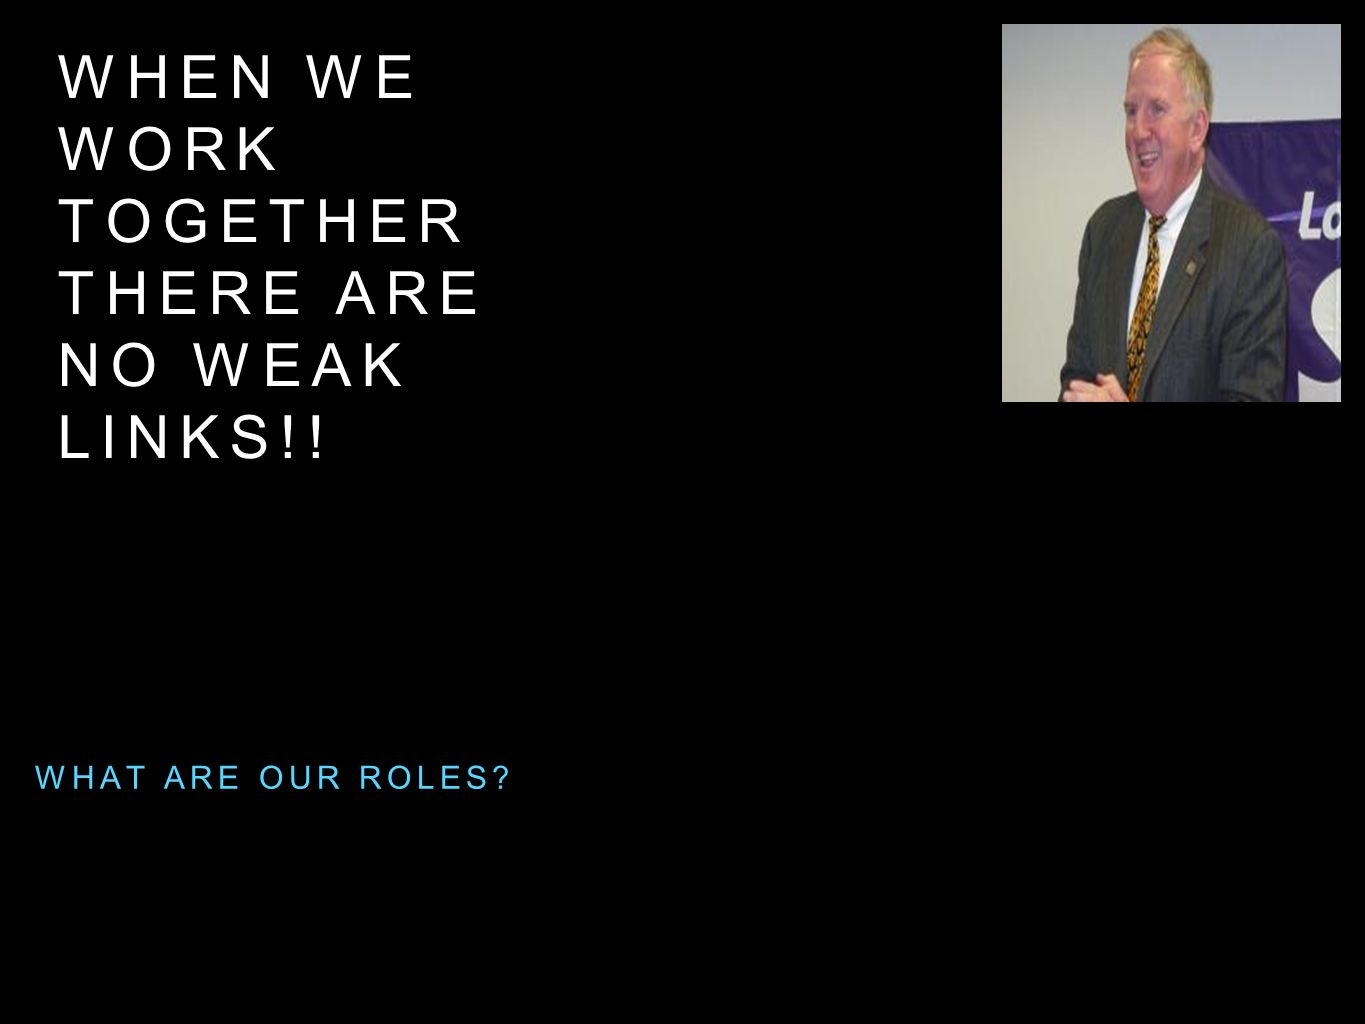 WHEN WE WORK TOGETHER THERE ARE NO WEAK LINKS!! WHAT ARE OUR ROLES